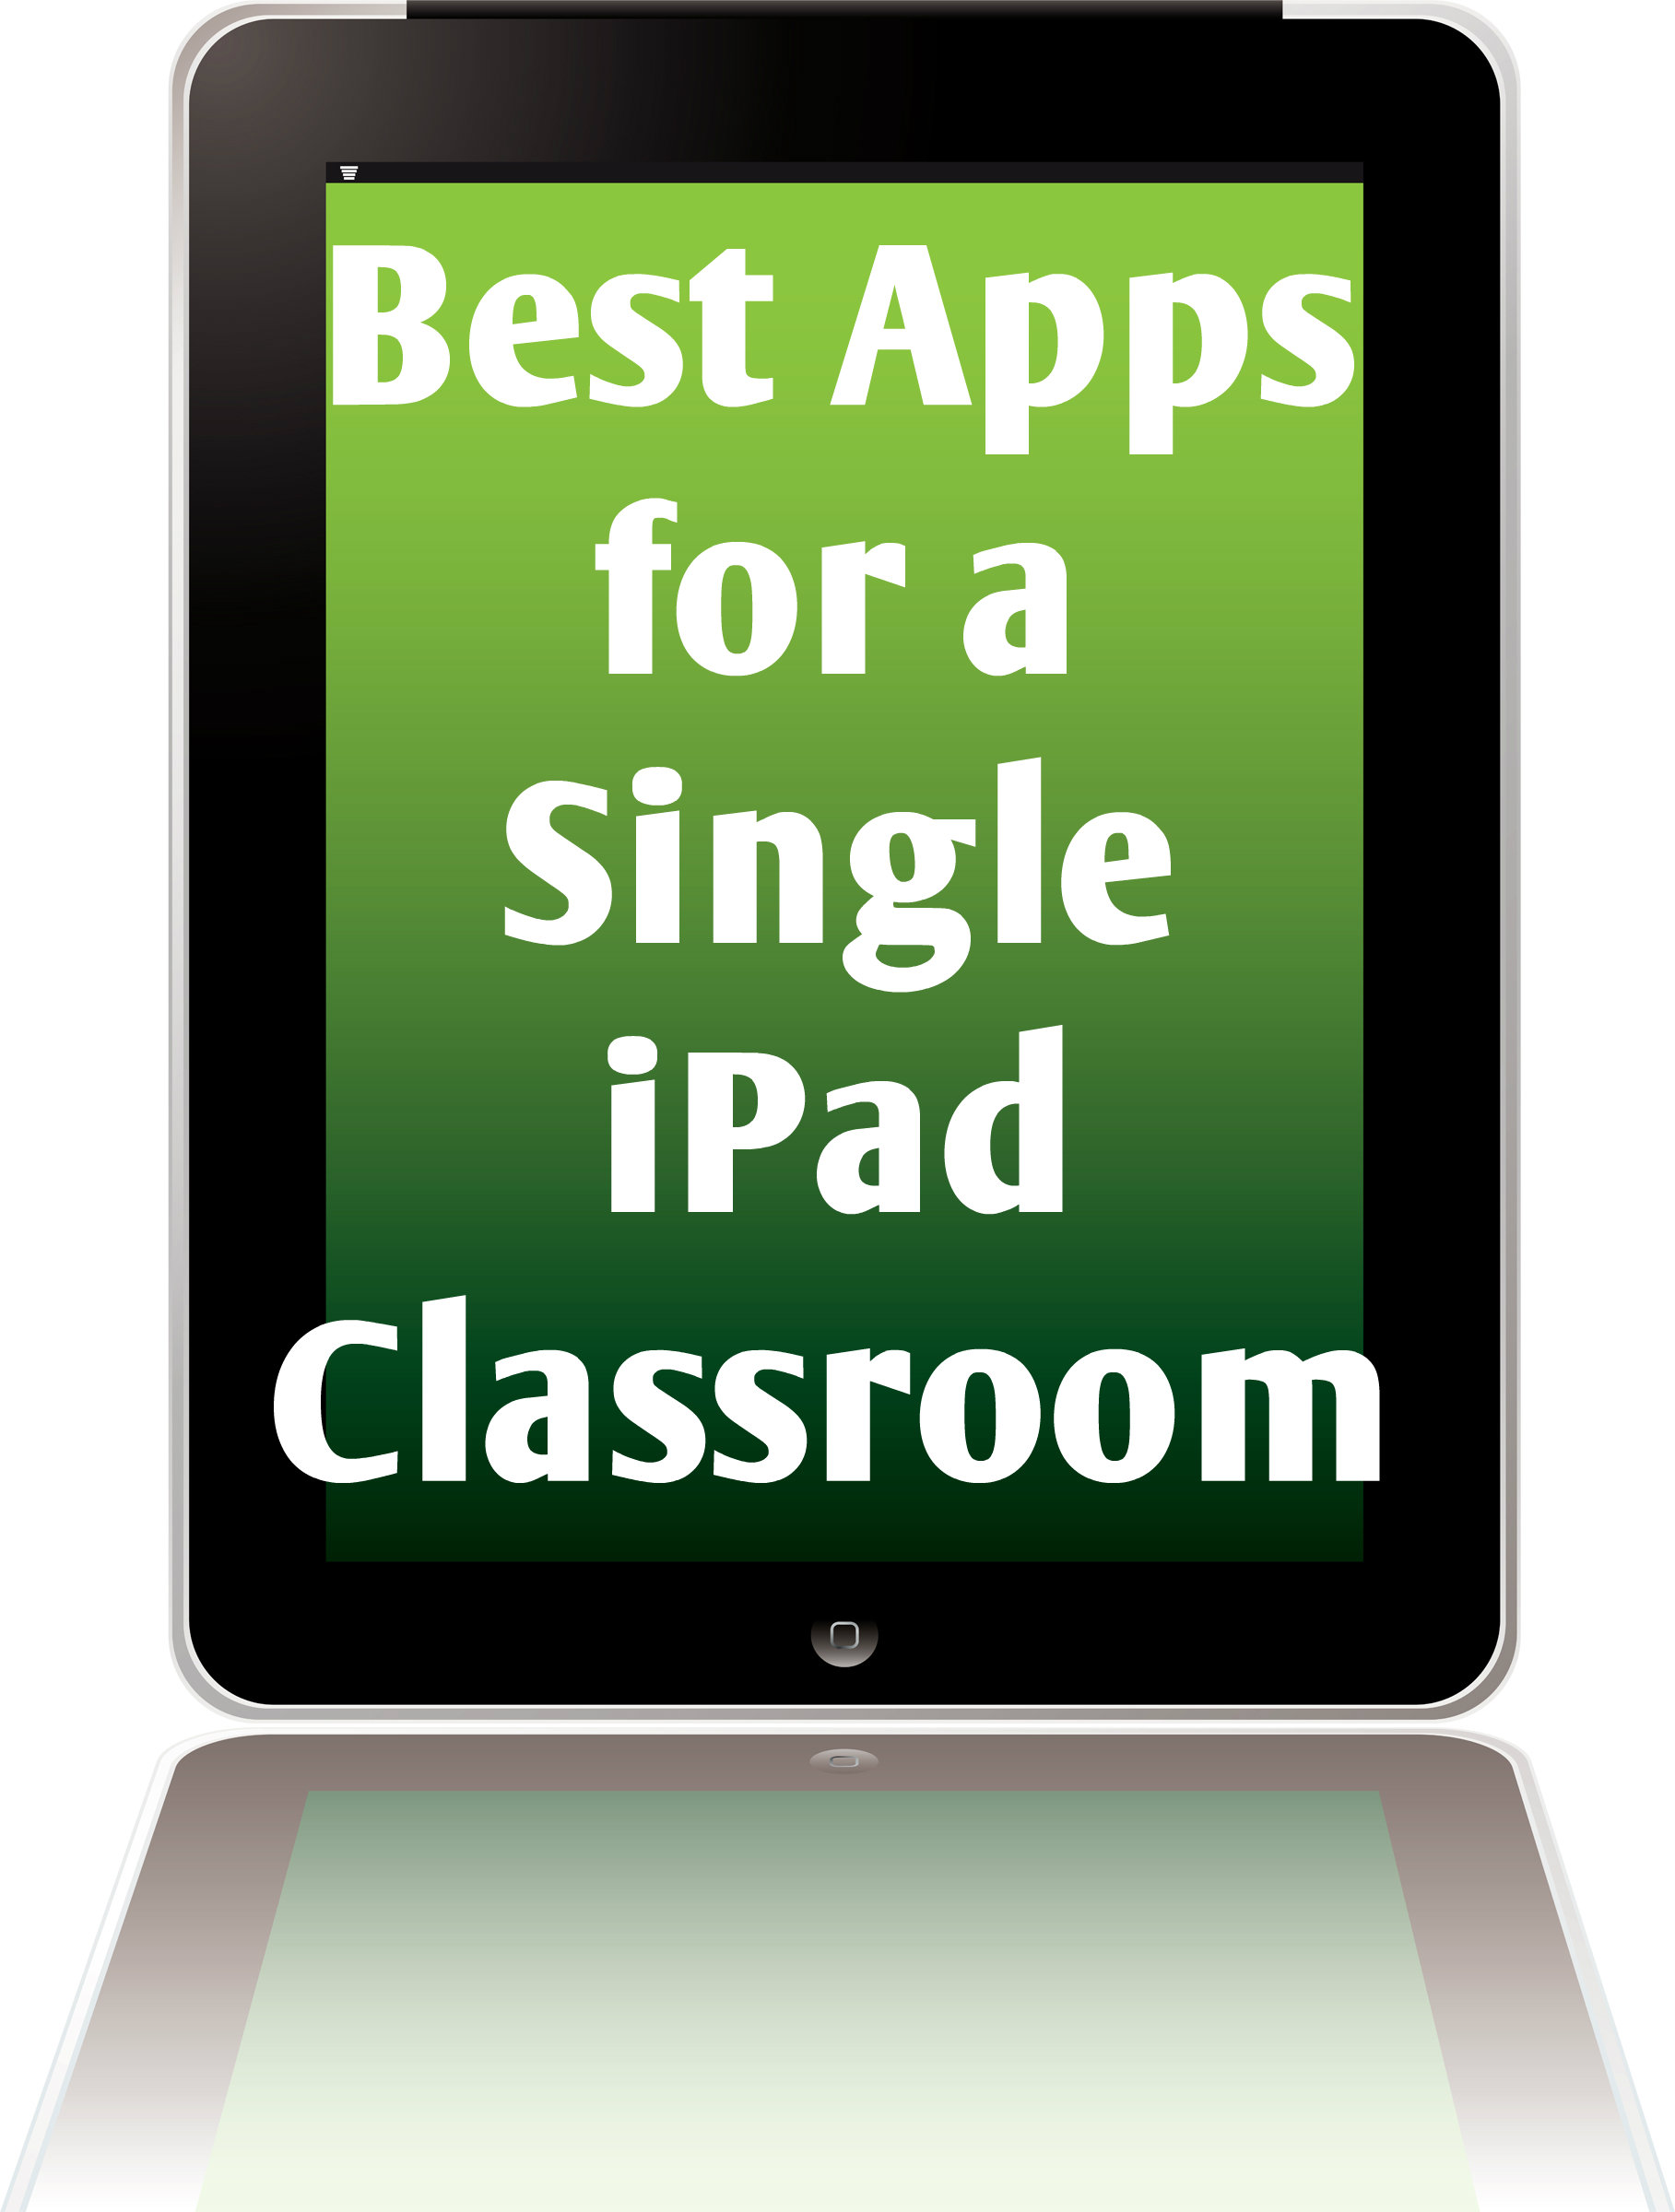 Best apps for a single iPad classroom